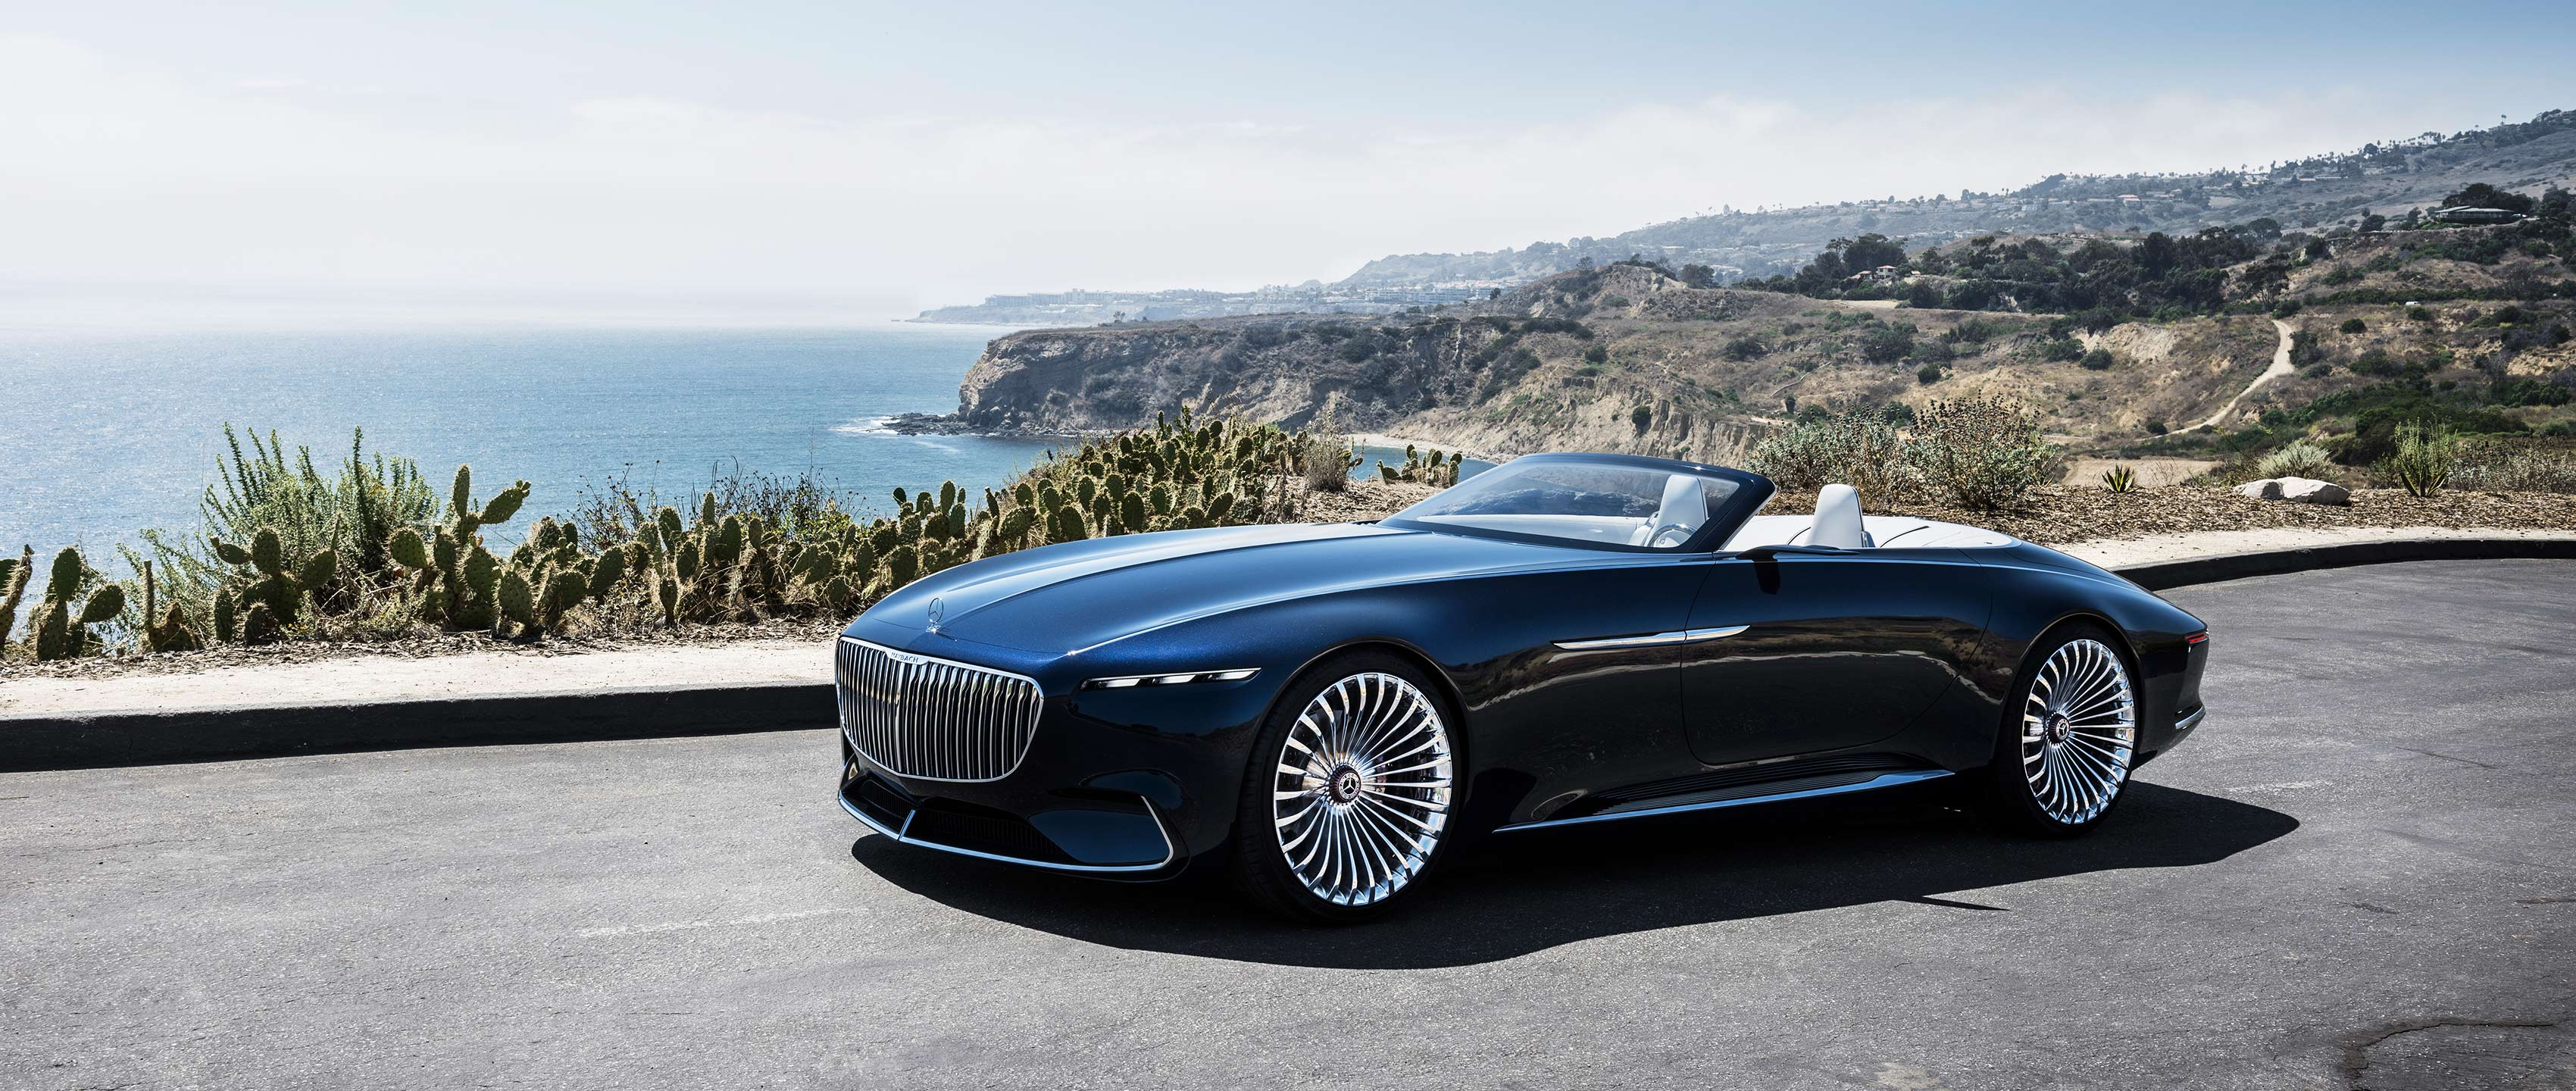 00-mercedes-benz-vehicles-vision-mercedes-maybach-6-cabriolet-3400x1440